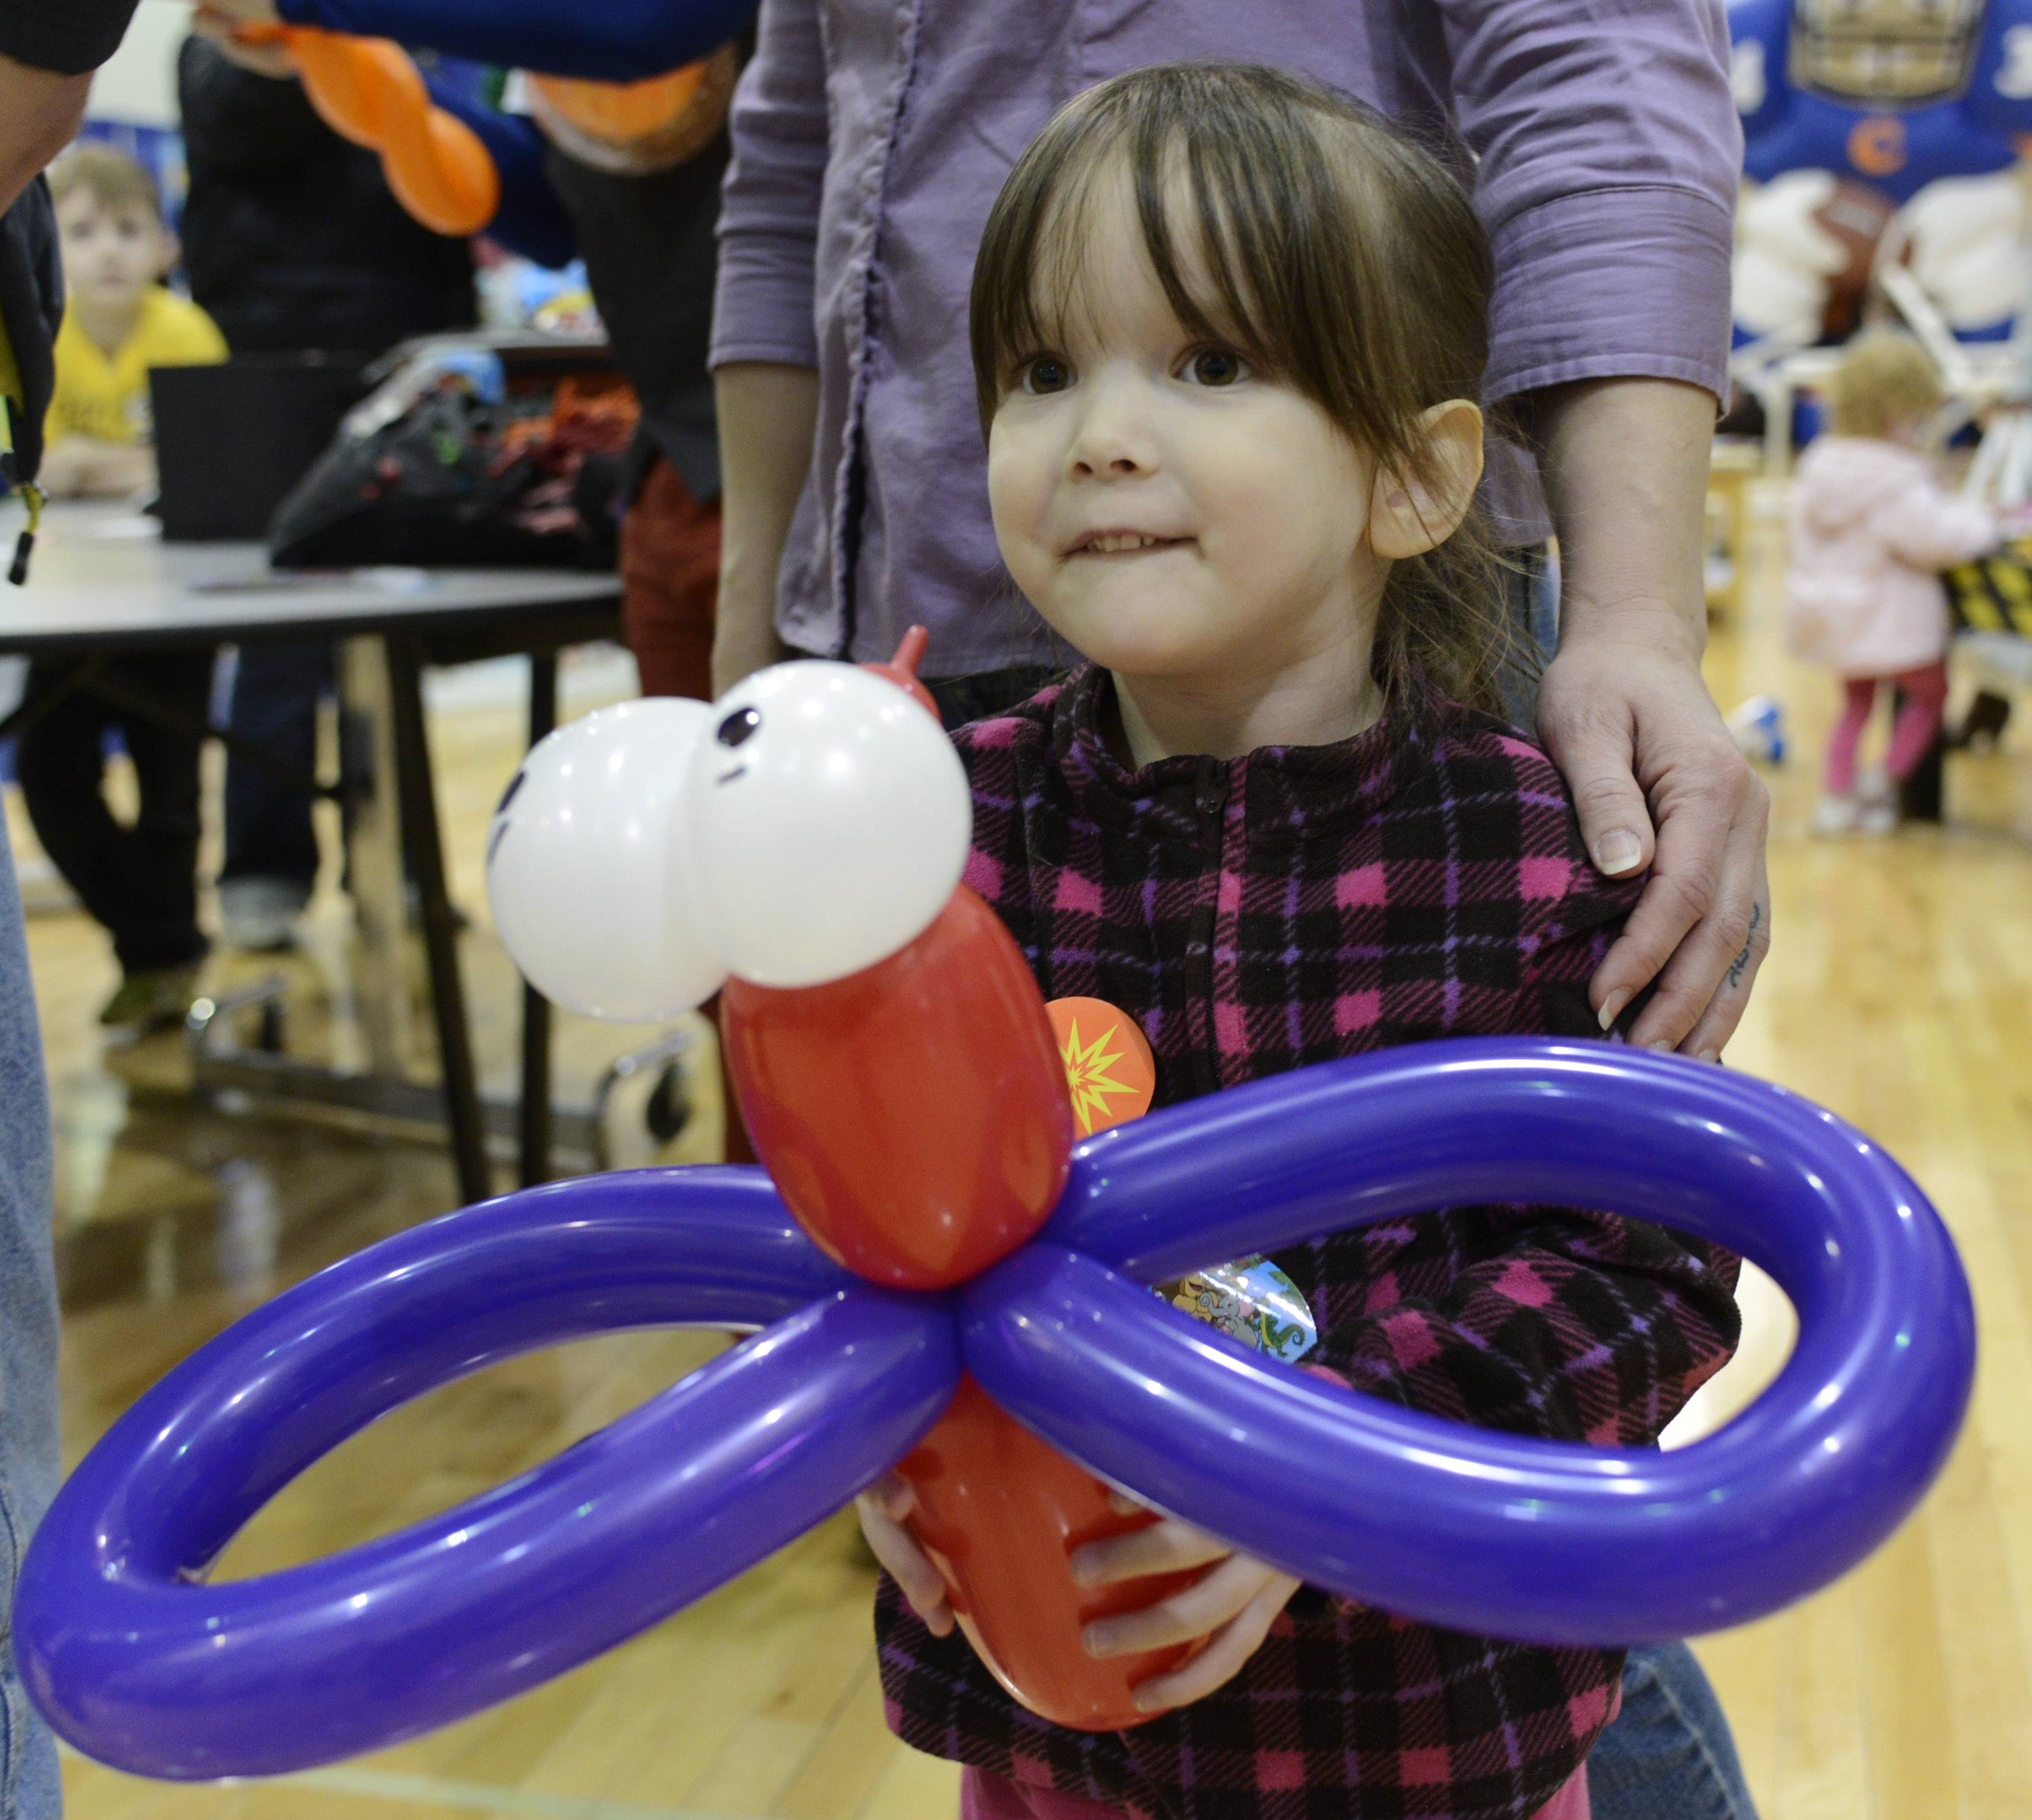 Sara Hawkins, 4, of Round Lake Beach carries a balloon animal that was made for her Saturday during the Springfest Expo 2014, held by the Lindenhurst-Lake Villa Chamber of Commerce at Lakes Community High School.